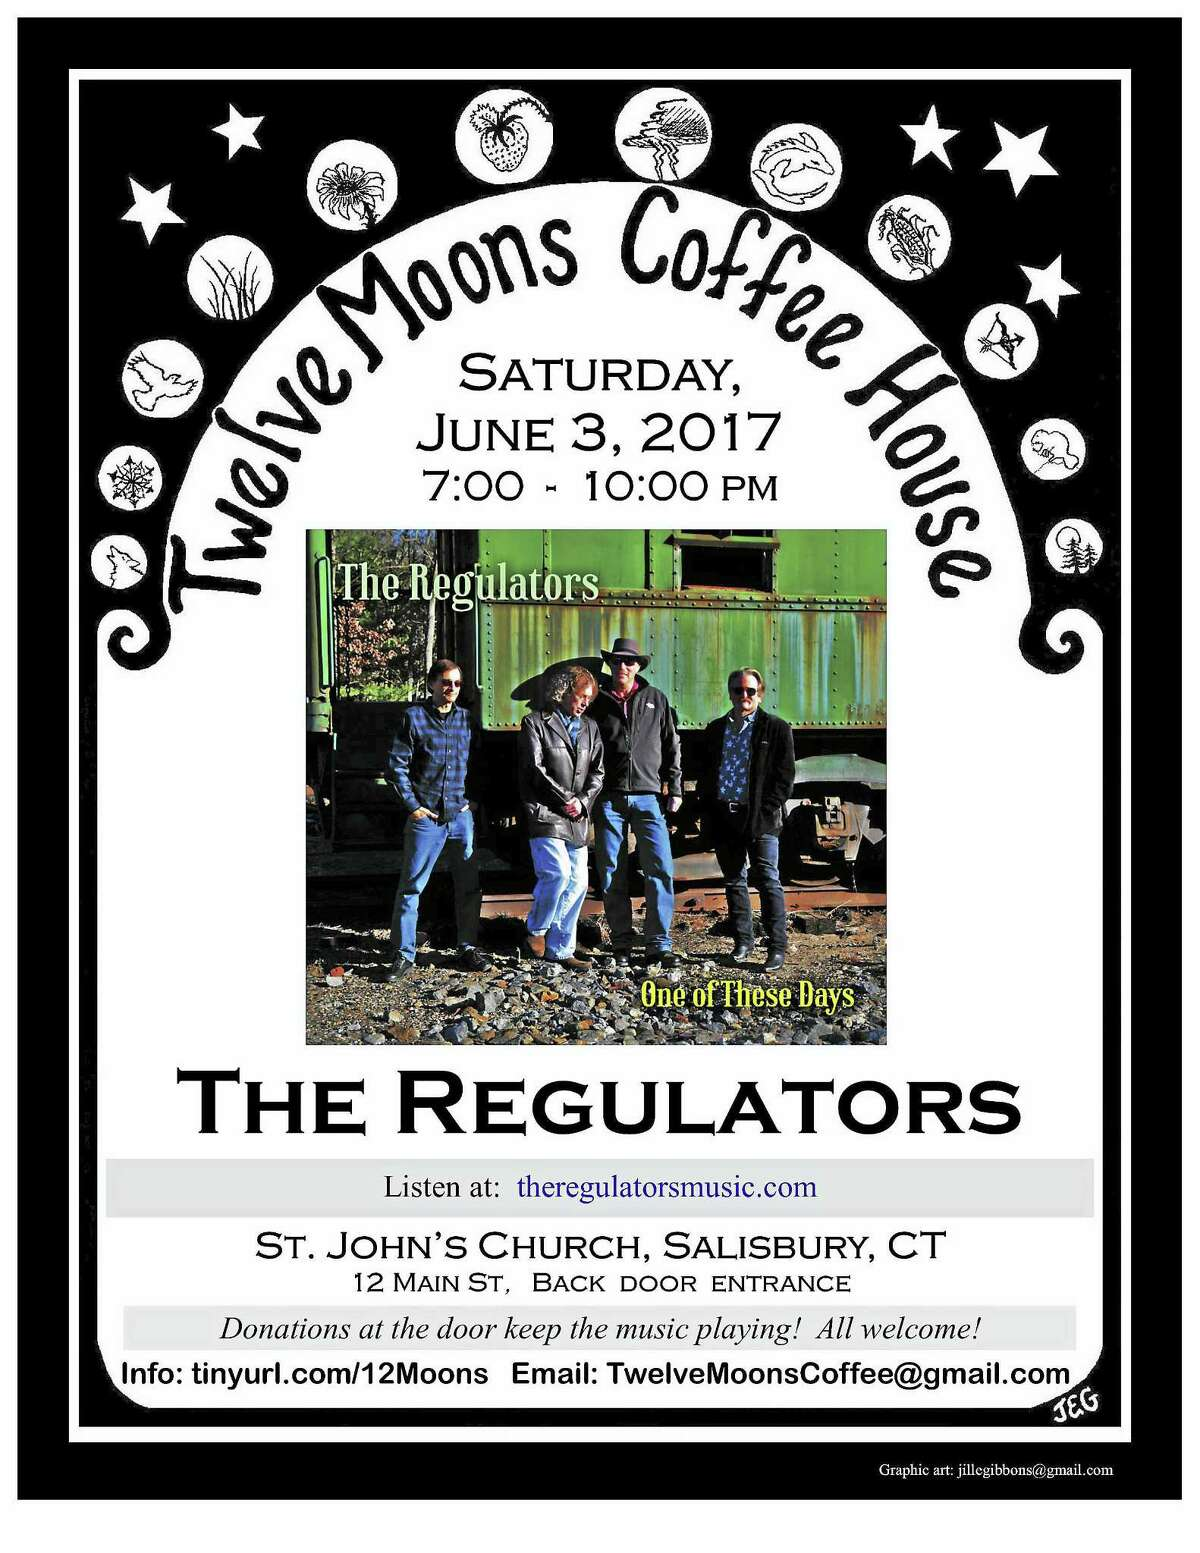 The Regulators will perform at 12 Moons Coffee House on Saturday, June 3.